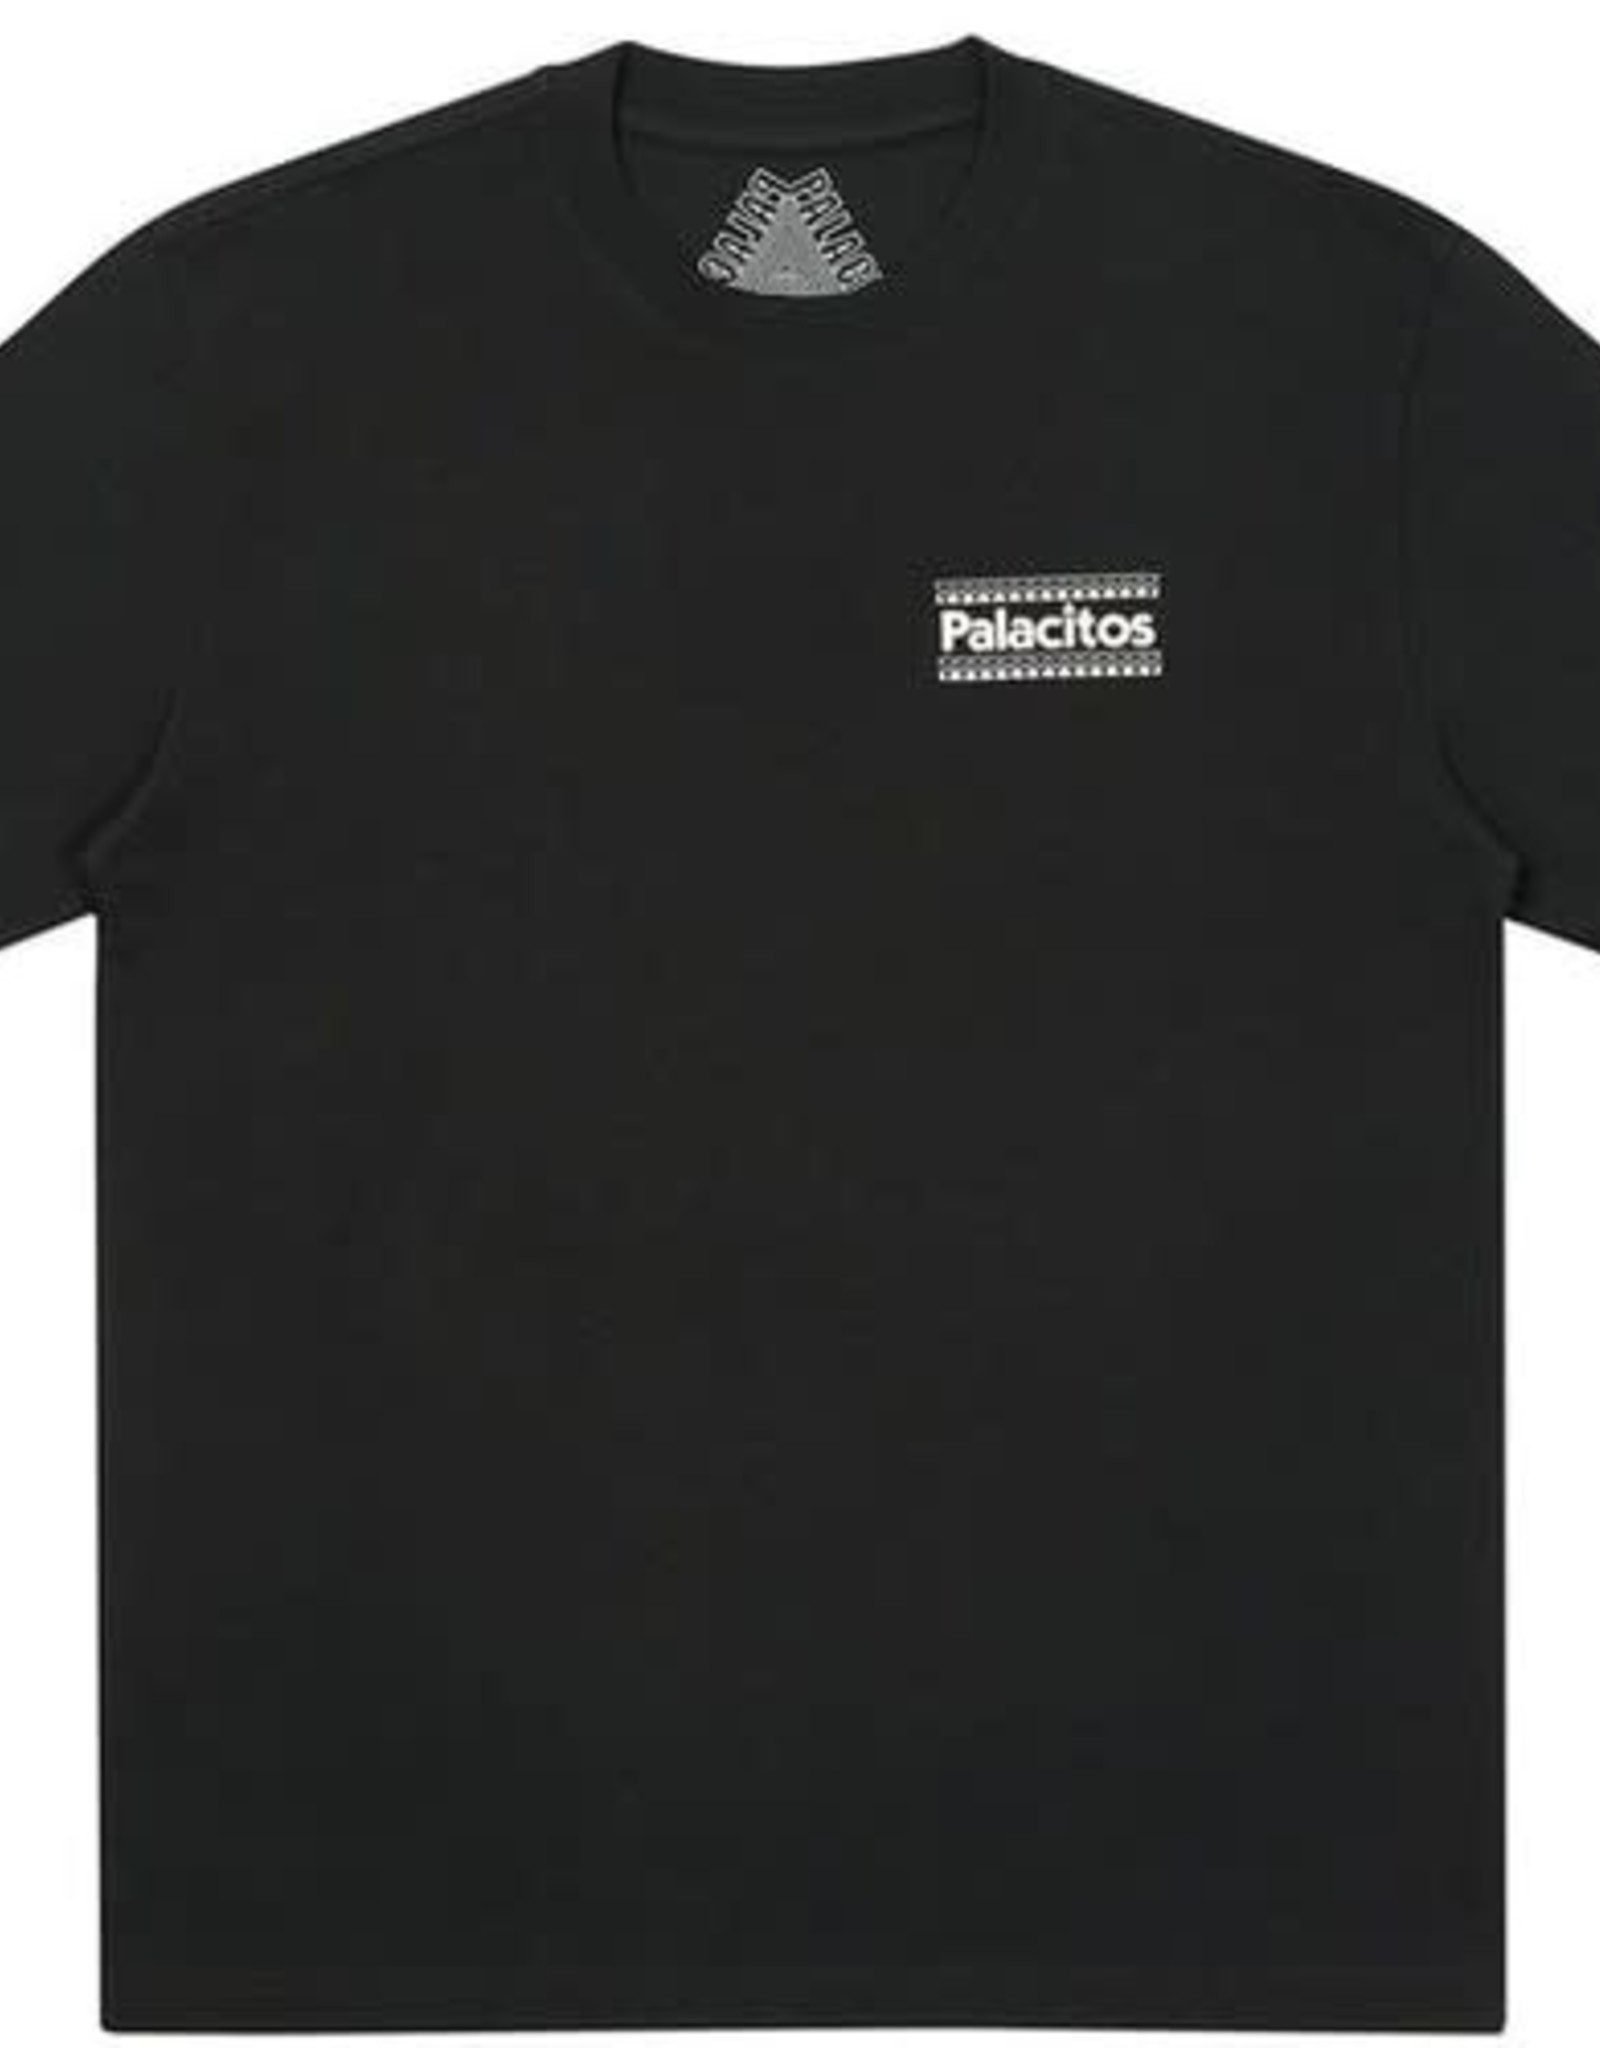 PALACE Palace Palacitos T-Shirt Black